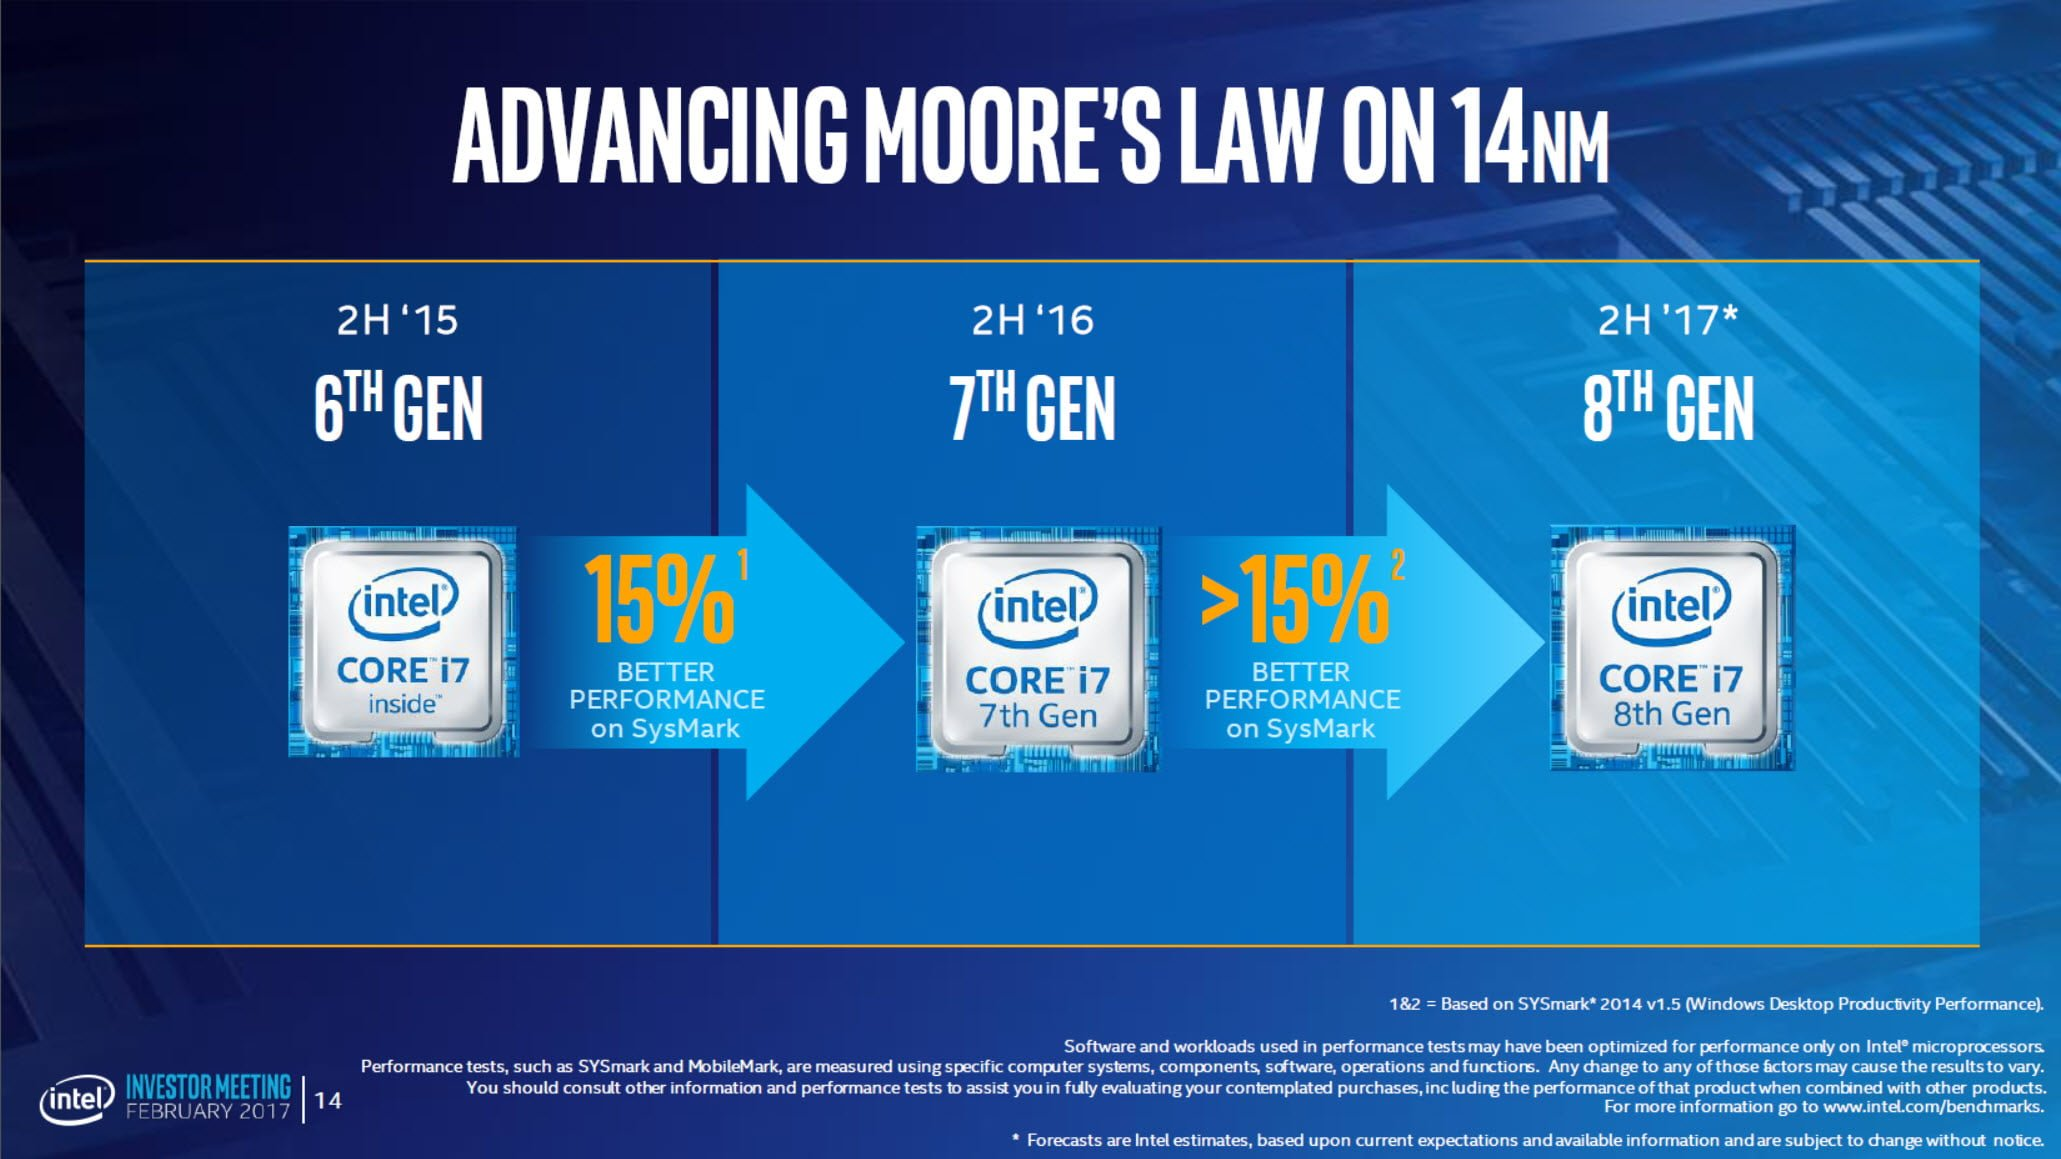 8th Gen Intel Core CPUs May Use Both 10nm,14nm Process